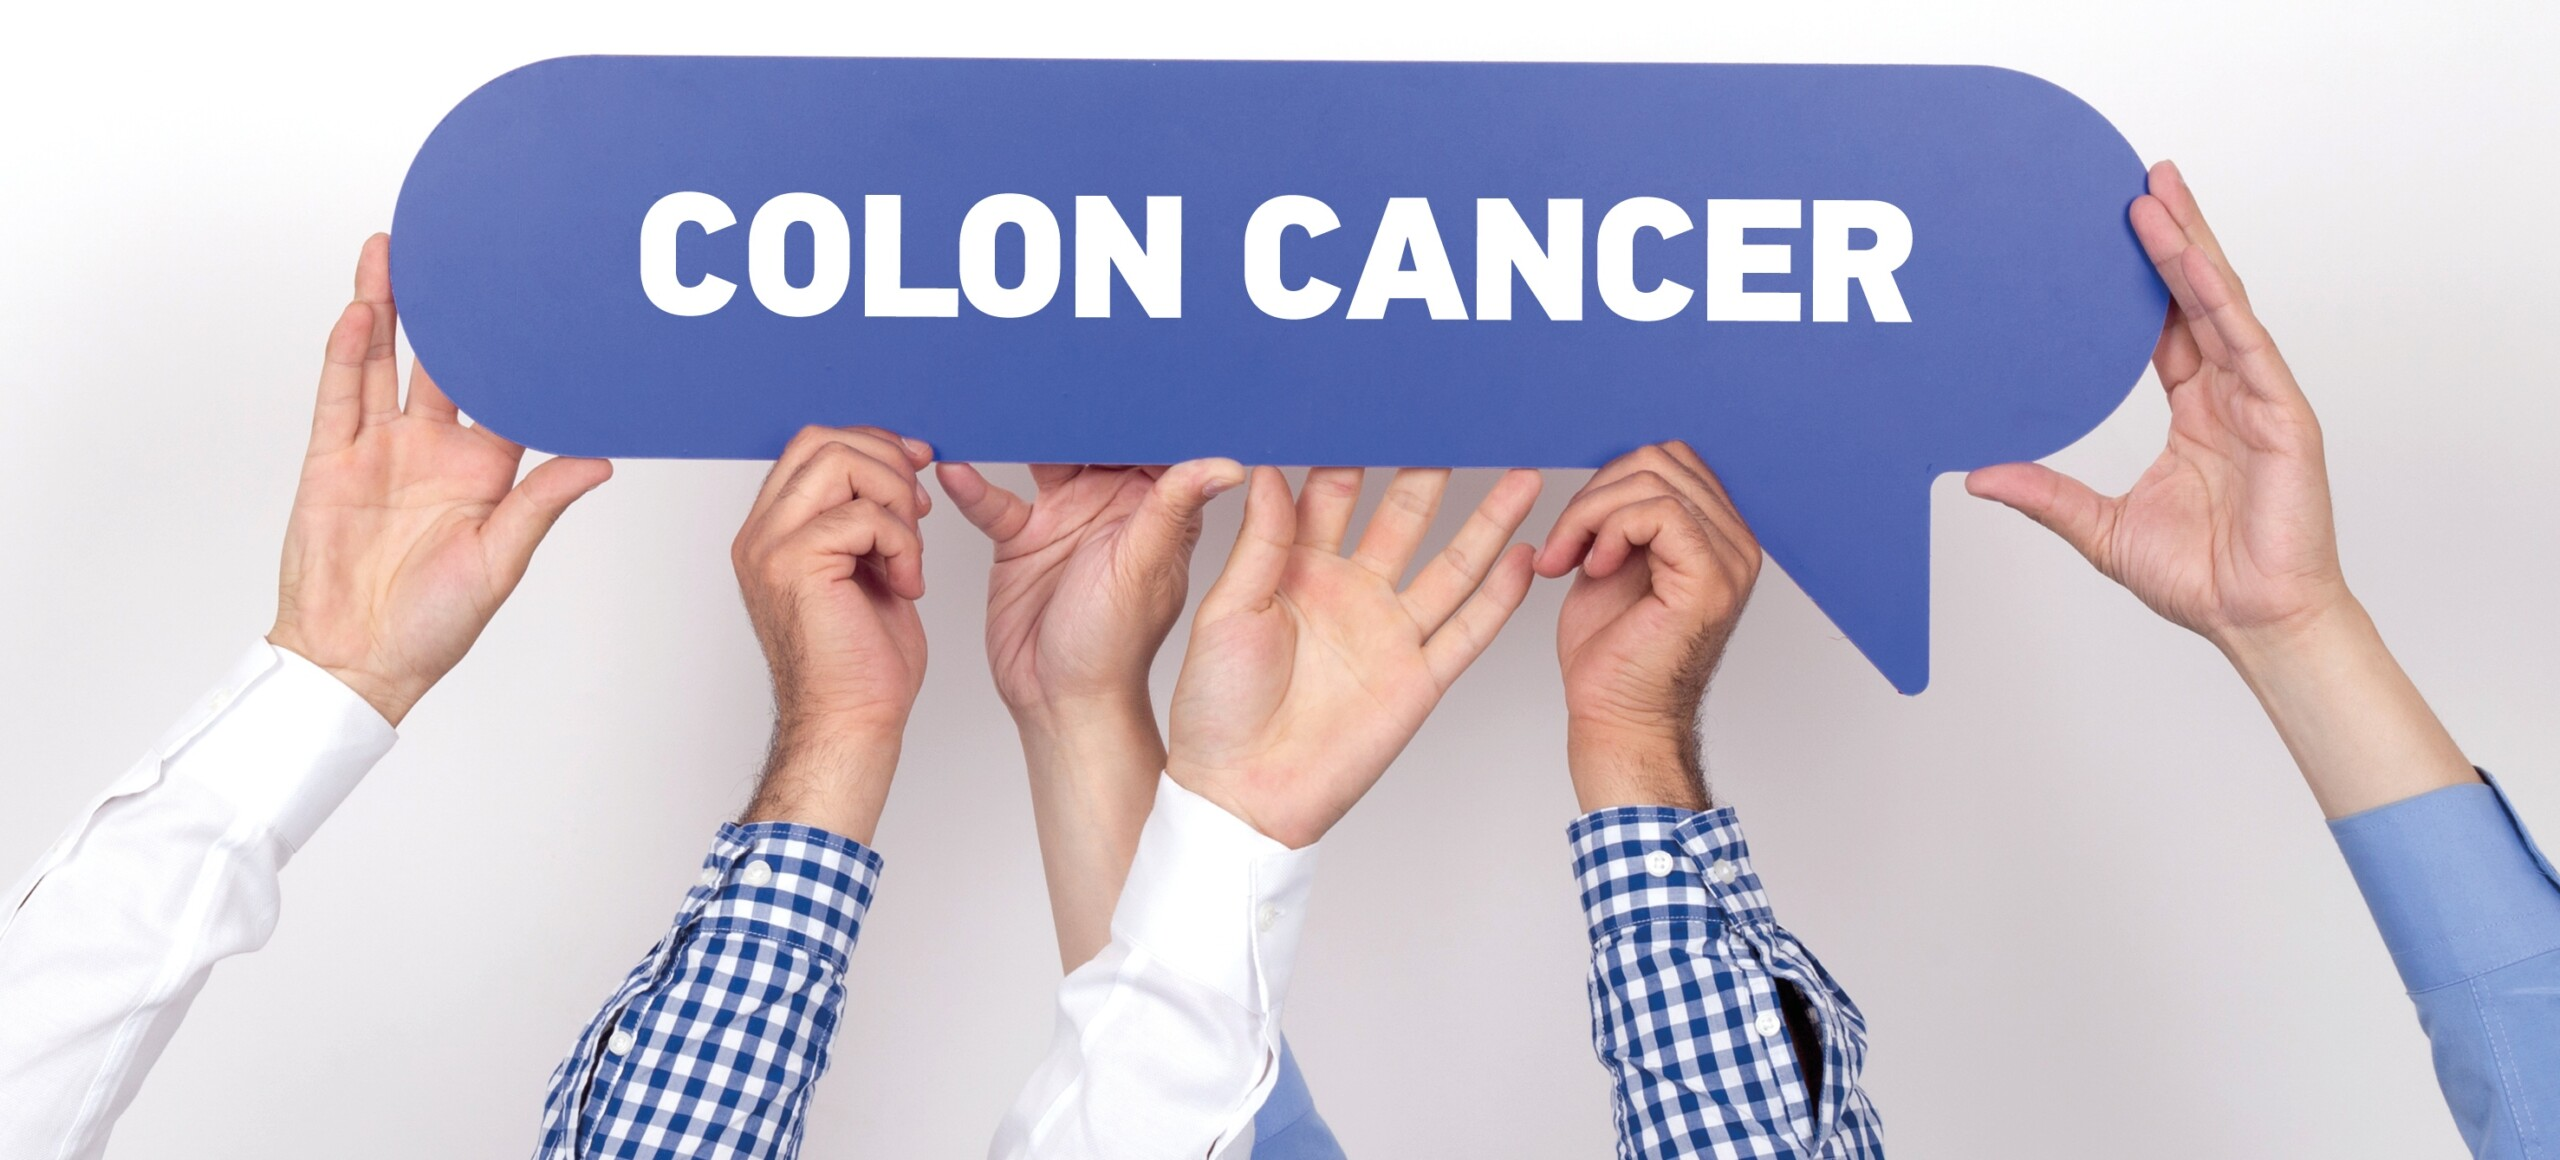 Can Colon Cancer Cause Sticky Bowel Movements?